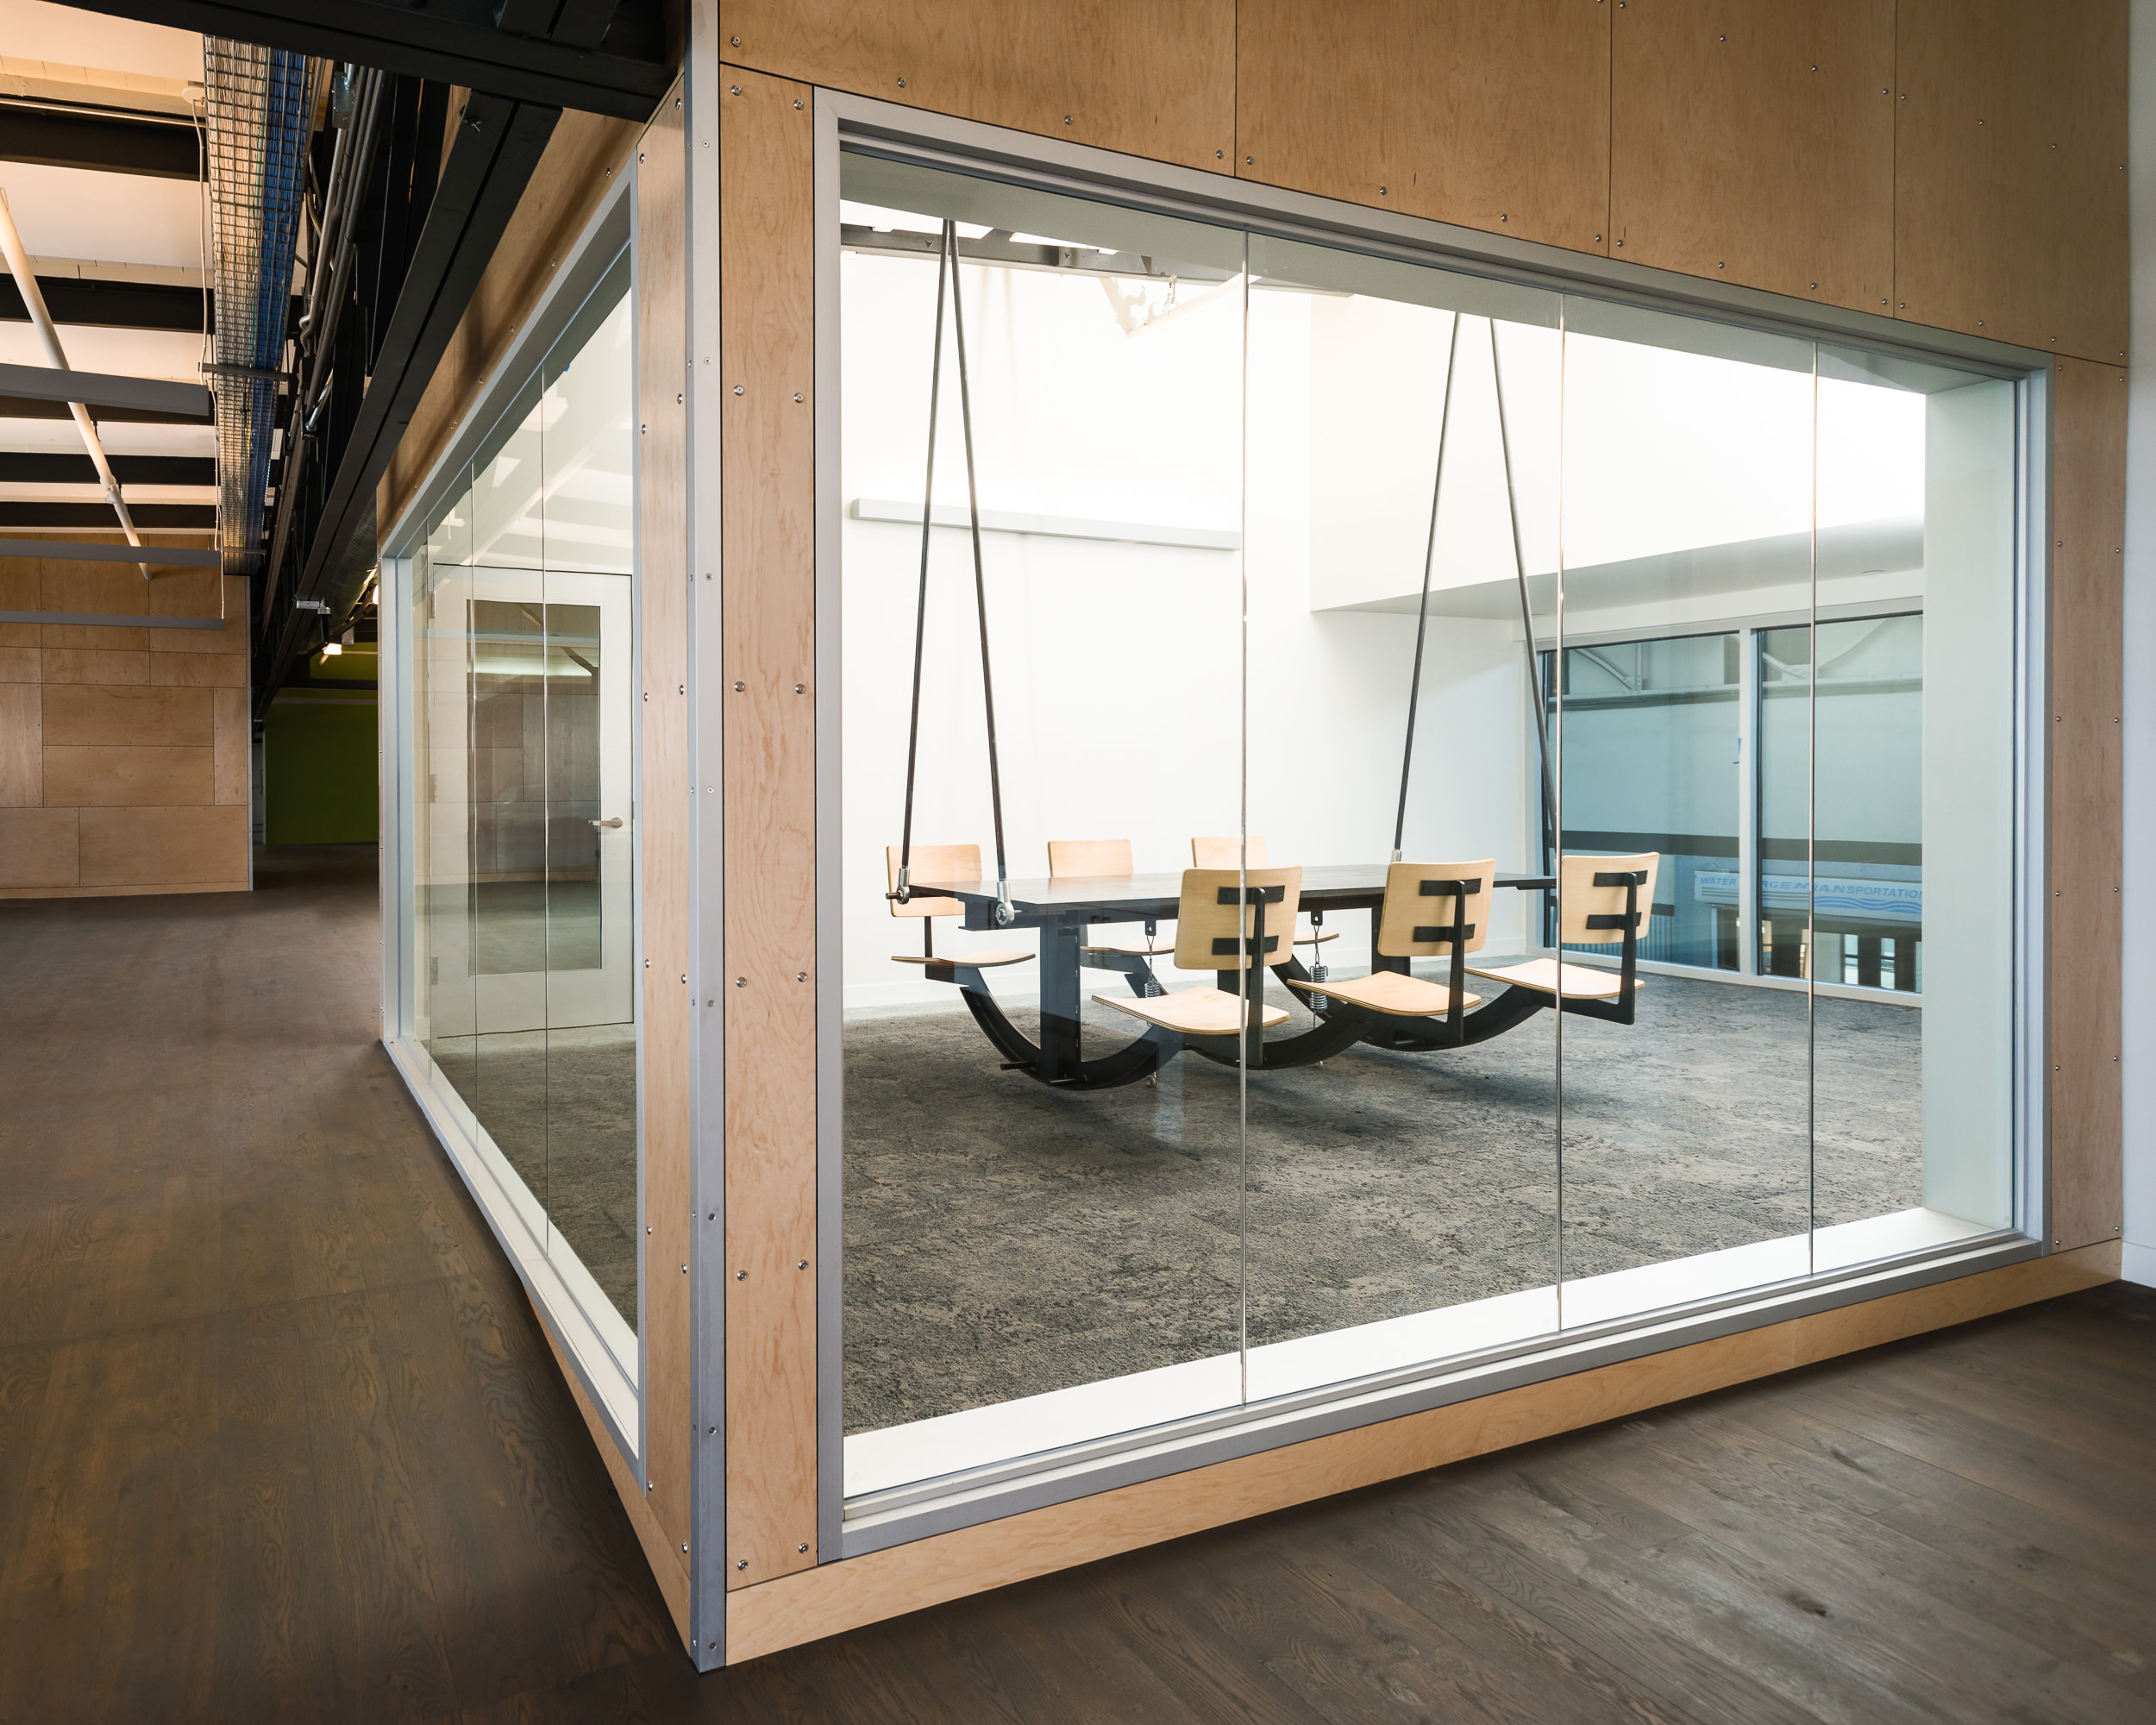 """Lundberg designed and built a swinging conference table and a reception booth for Autodesk's office in San Francisco. Based on Autodesk's request for a conference table """"emblematic of collaborative use"""", the conference table is a hanging fixture that moves with the movements of its participants, i.e. """"we're all in this together"""".  These photos document the on-site assembly process. The materials were primarily wood and blackened steel. During construction, before spring dampers were installed, staff would come periodically to """"give it a go"""".  A: Lundberg Design"""